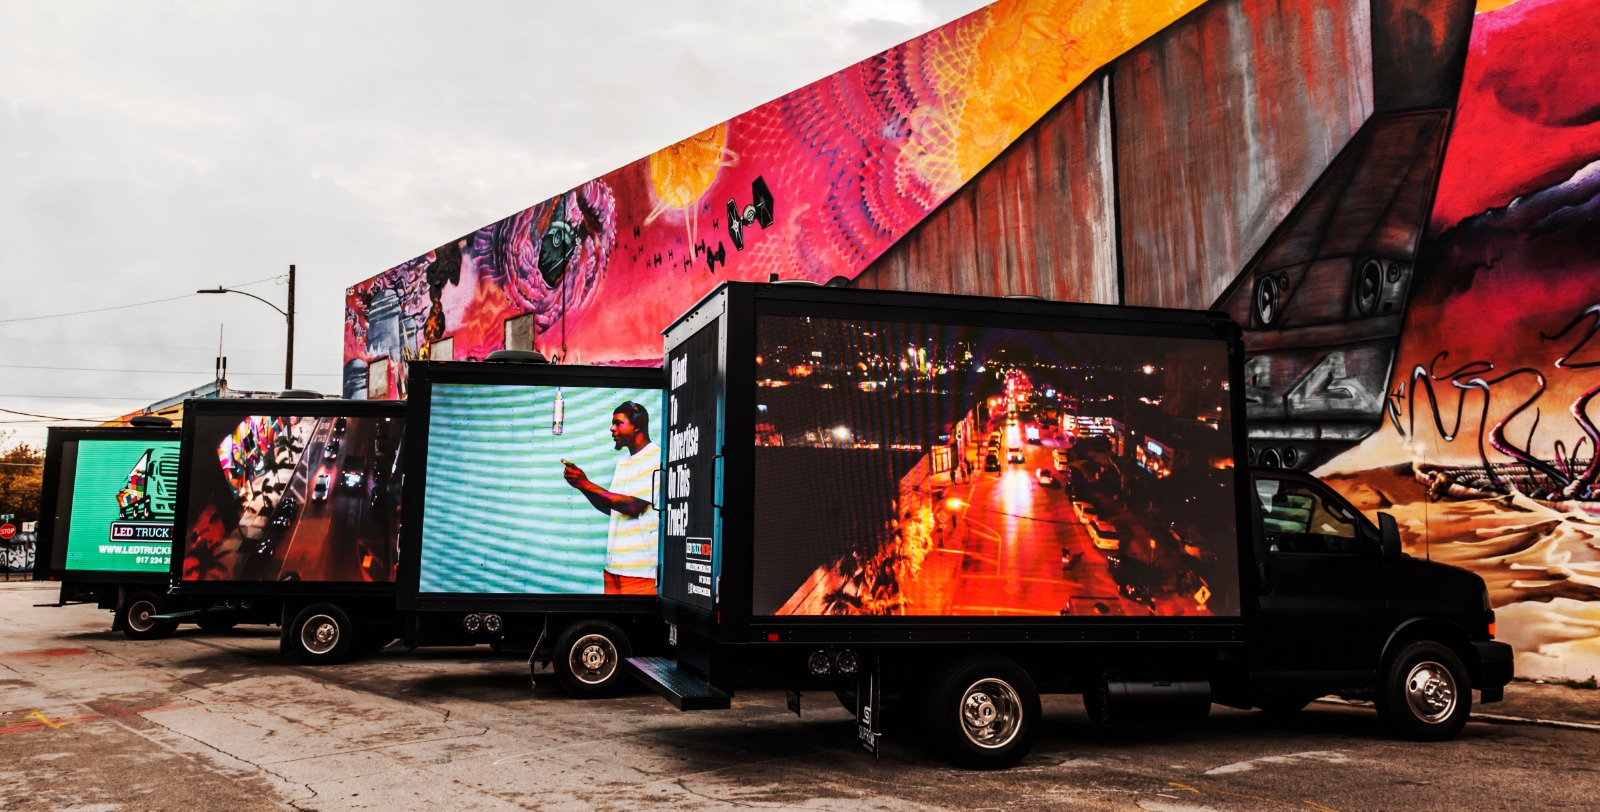 trucks lined up with digital ads on the sides of the trailers